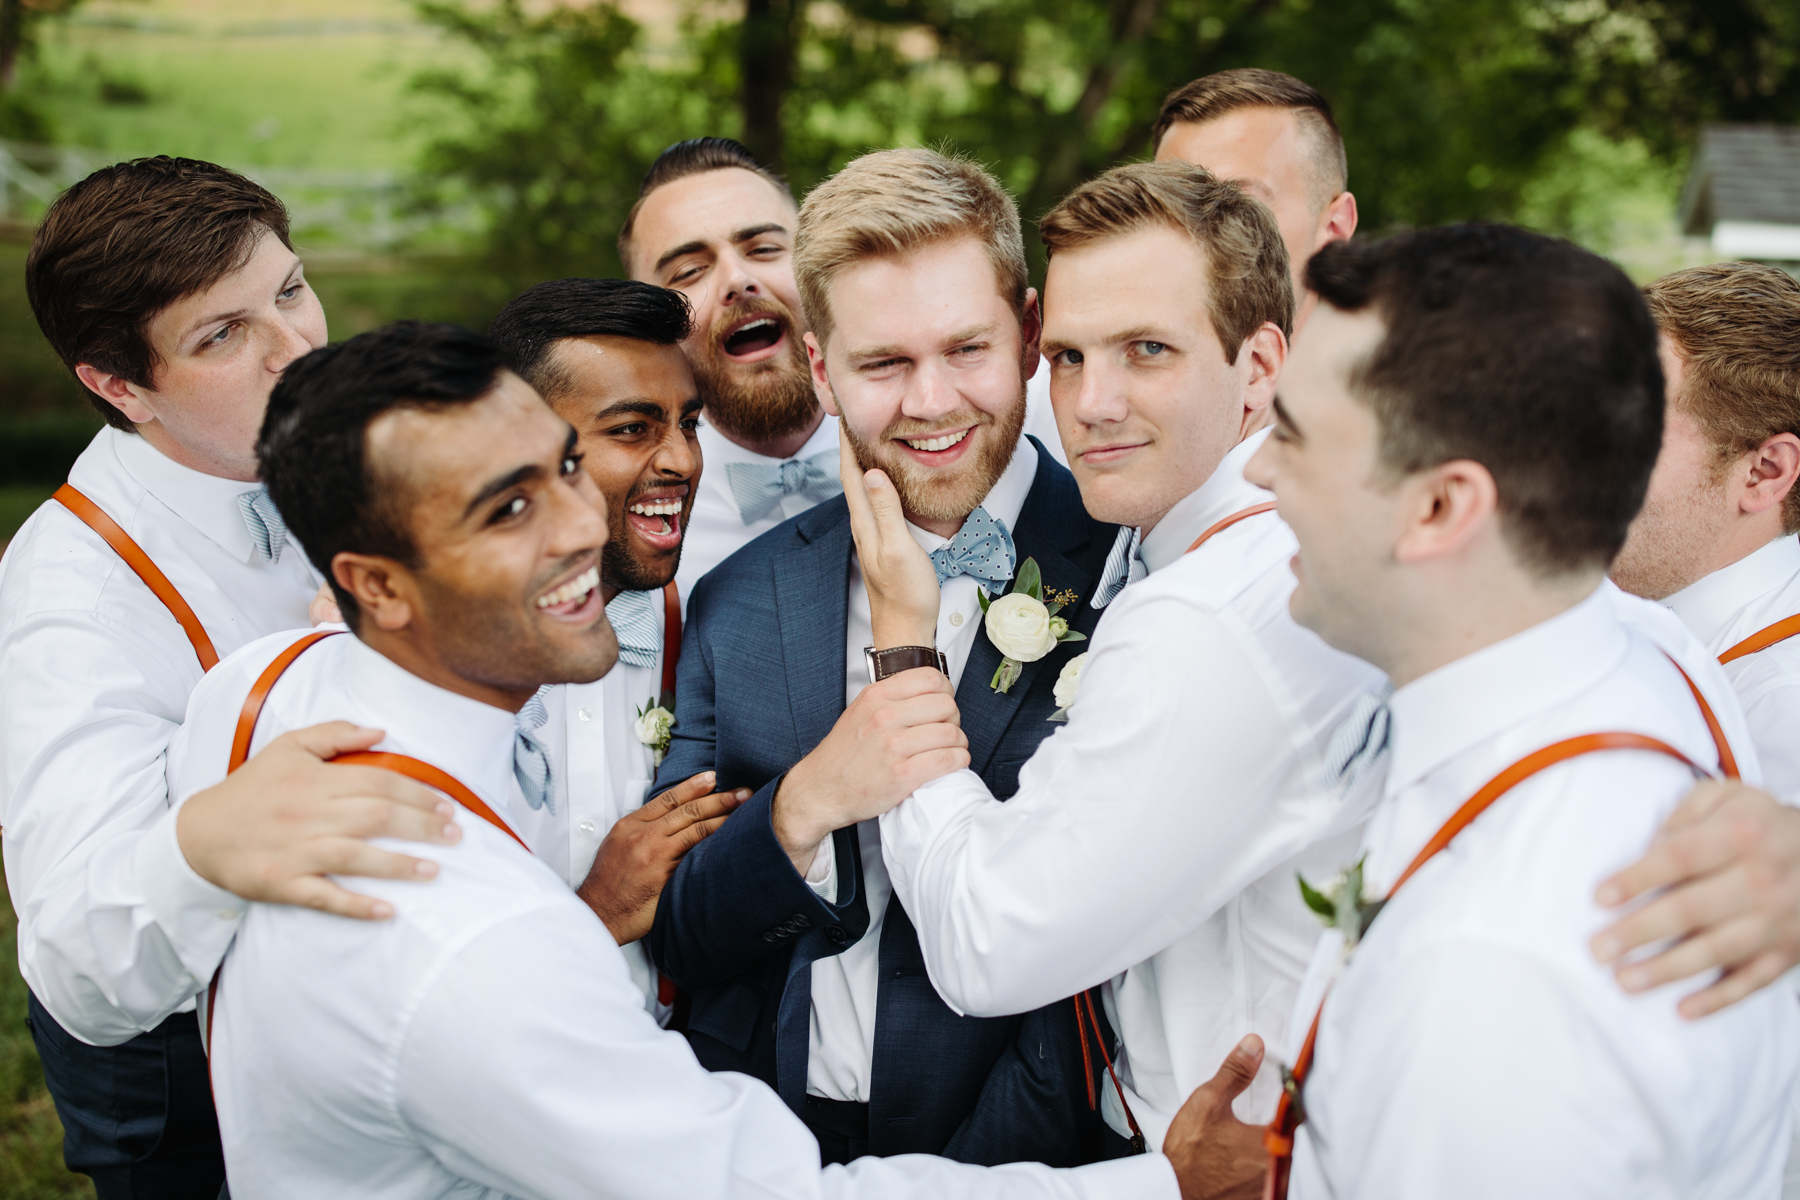 groom and groomsmen portraits before a Sunny summer wedding at Dara's Garden in Knoxville, Tennessee